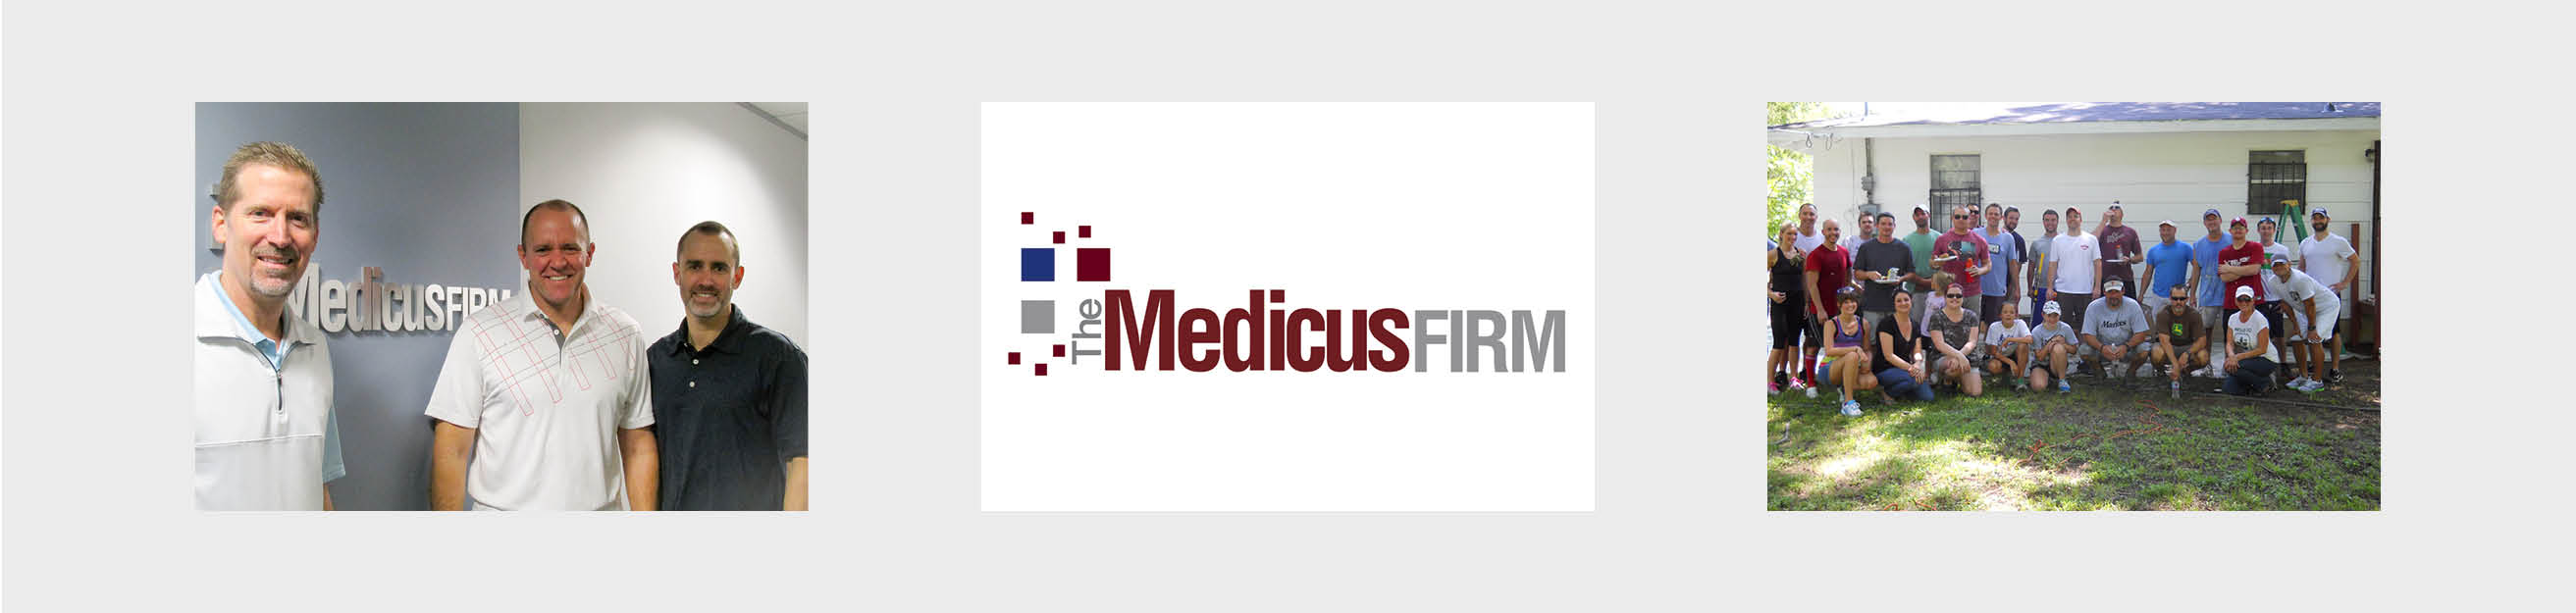 The Medicus Images